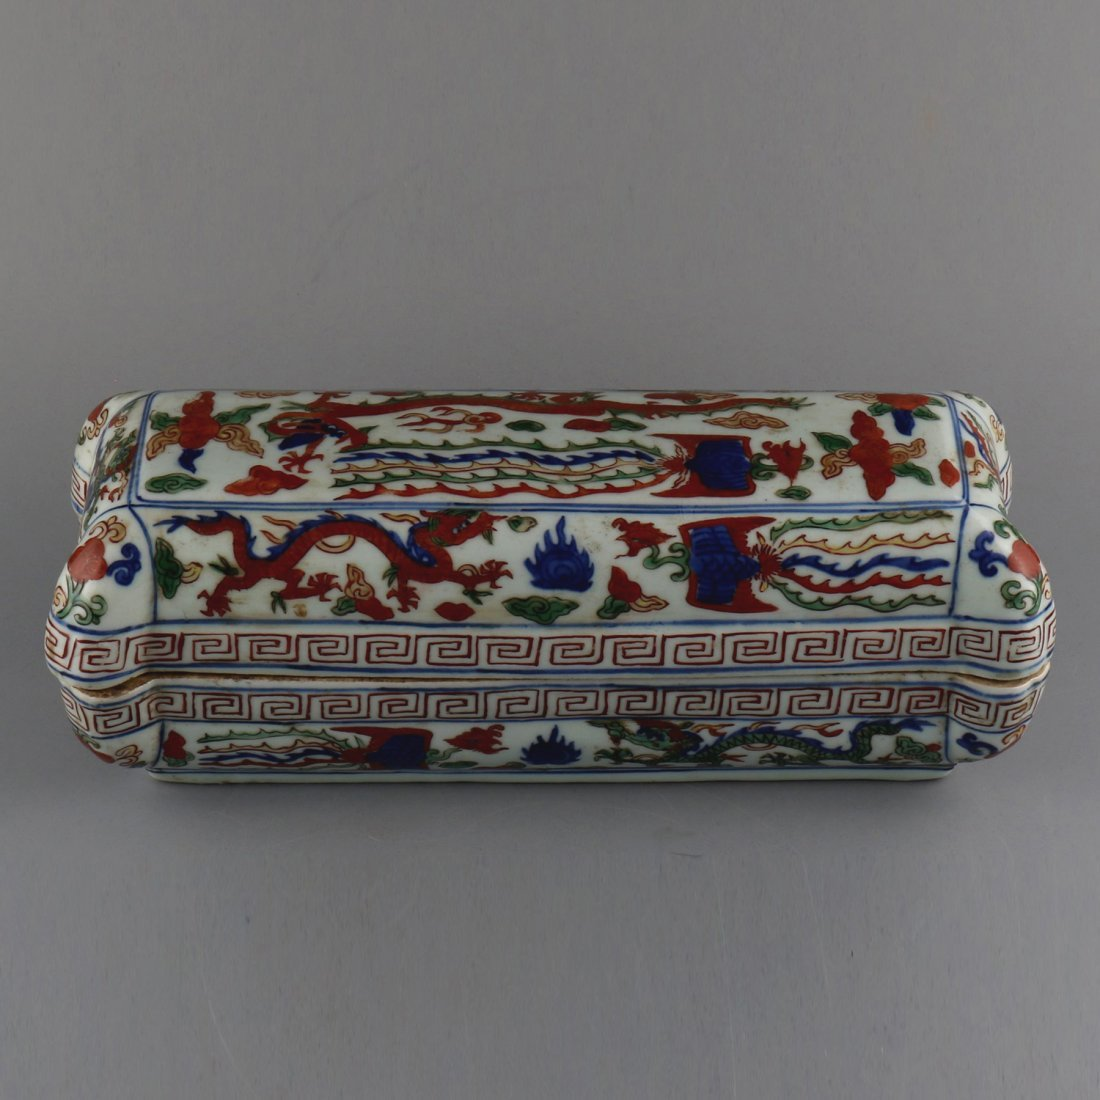 Chinese Wu Cai Porcelain Square Box with Cover